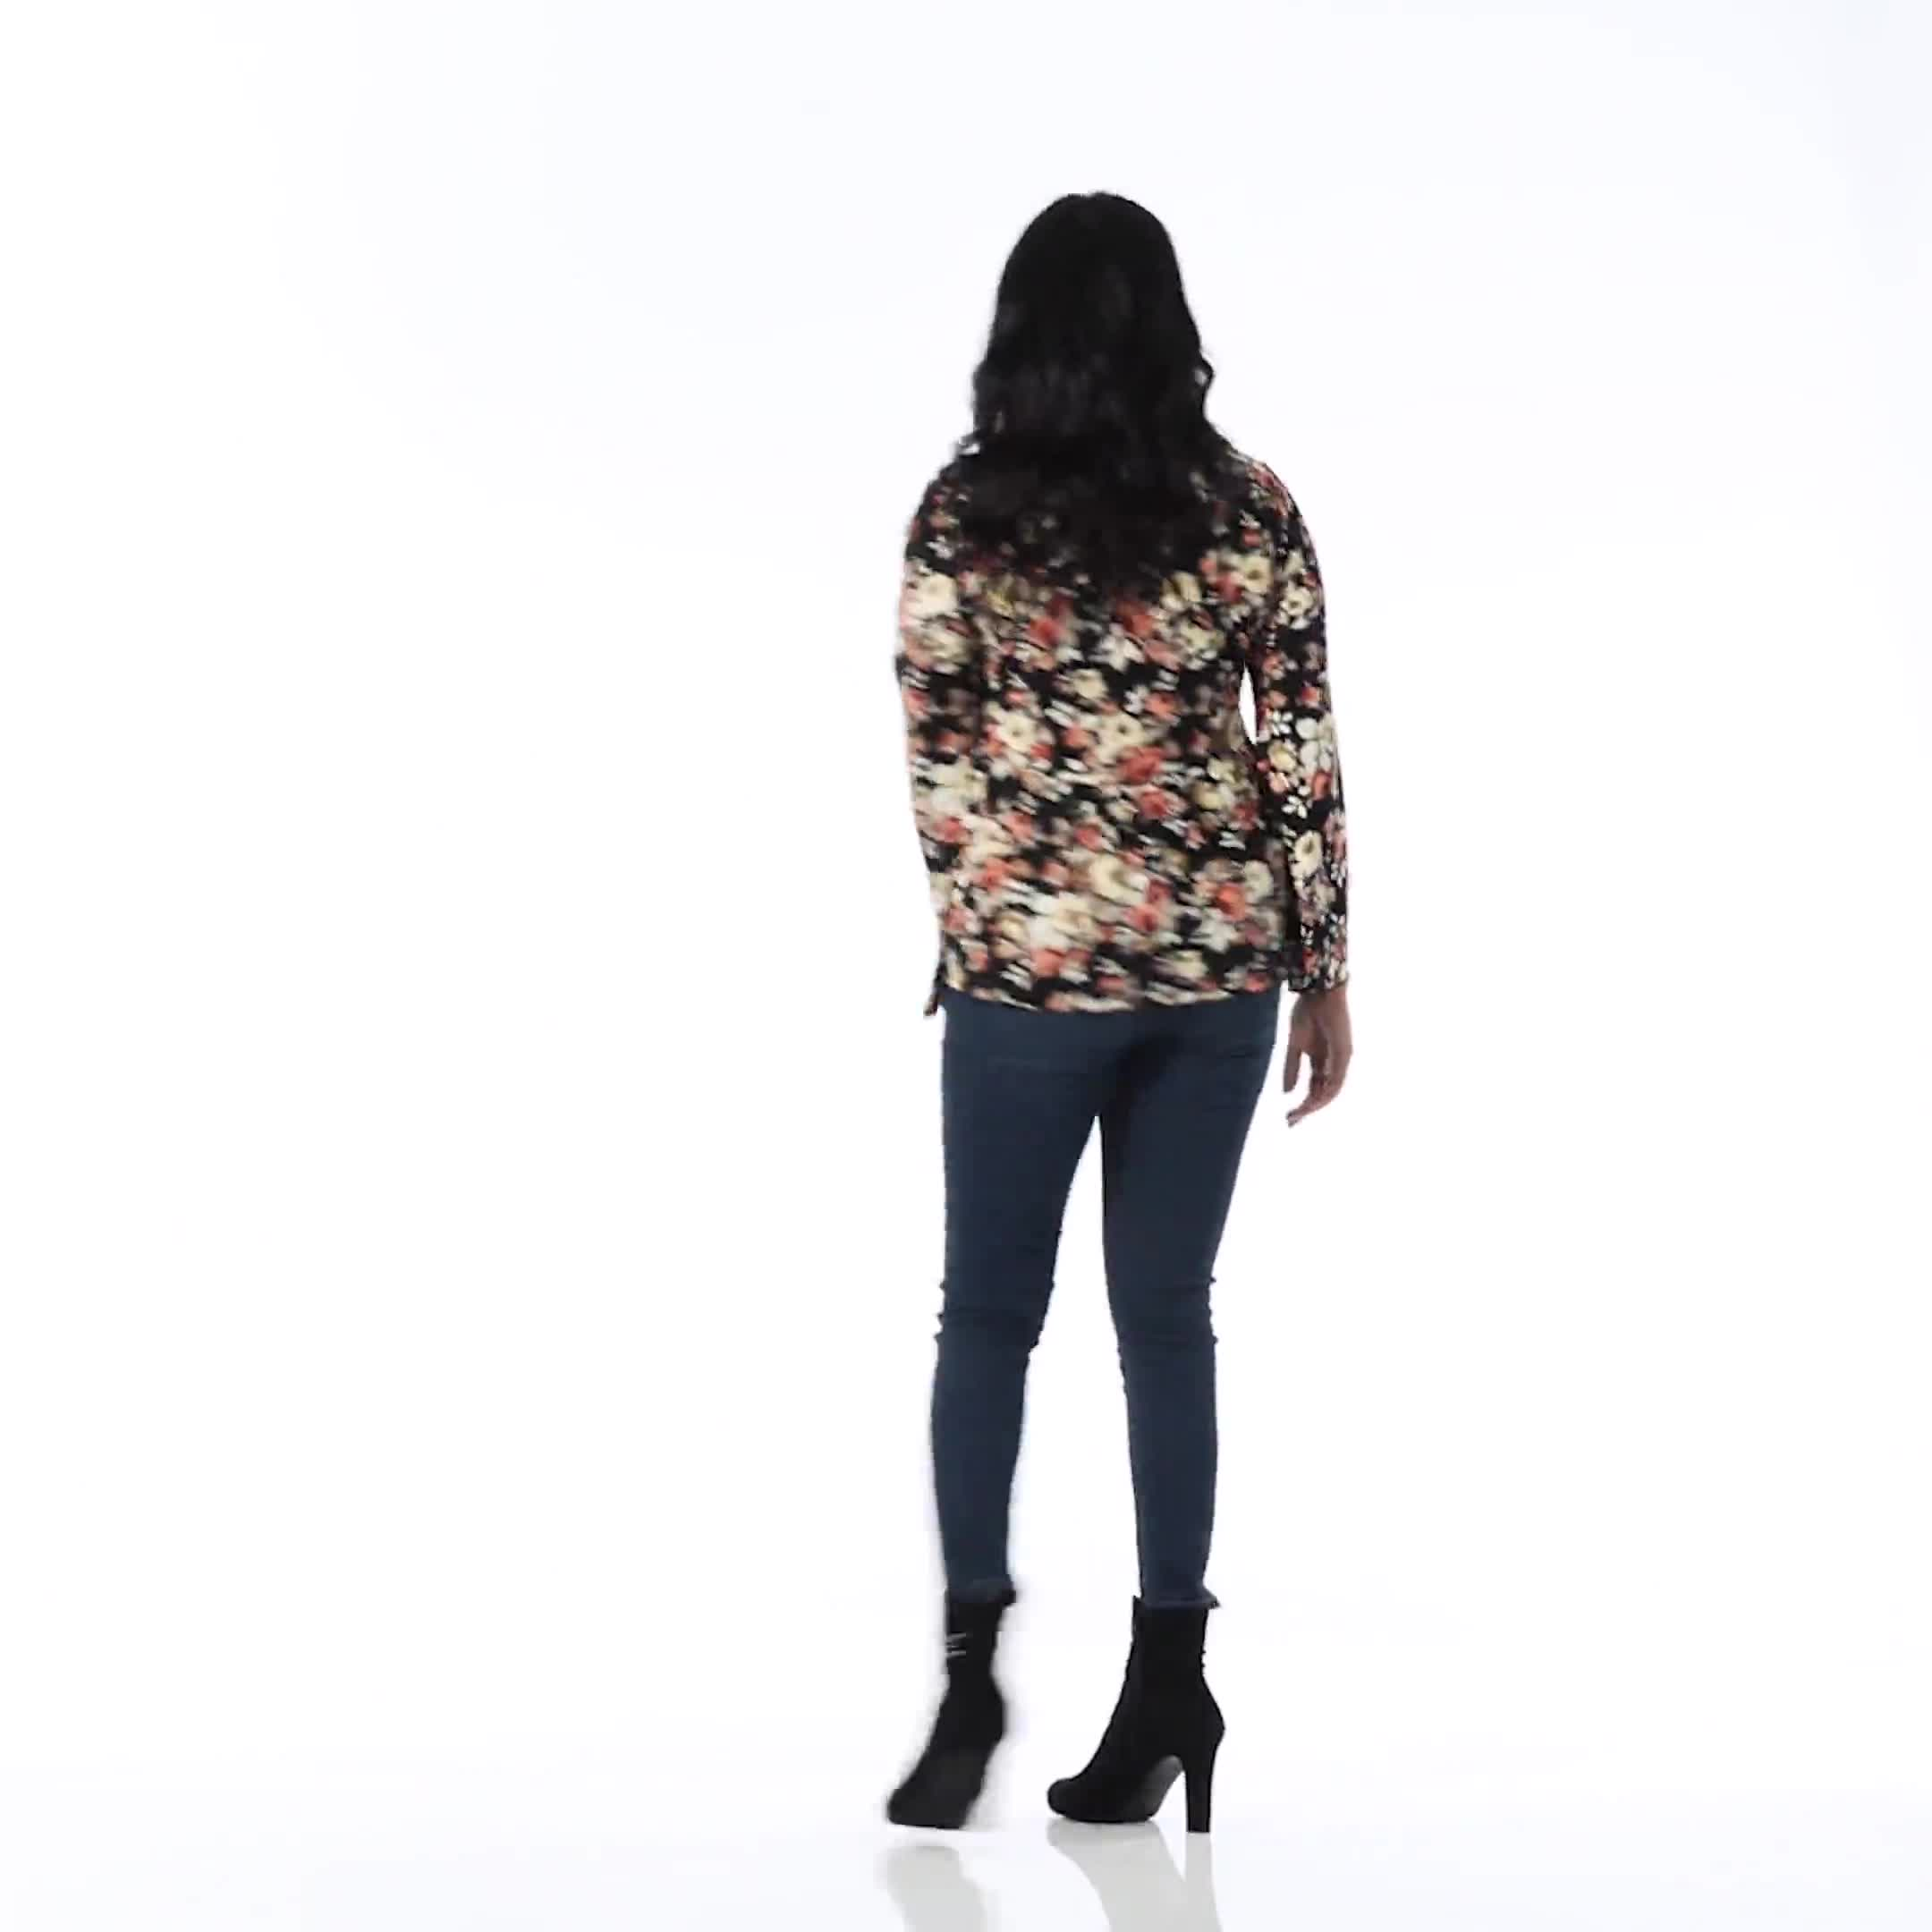 Floral Flare Sleeve Hacci Sweater Knit Top  - Misses - Video